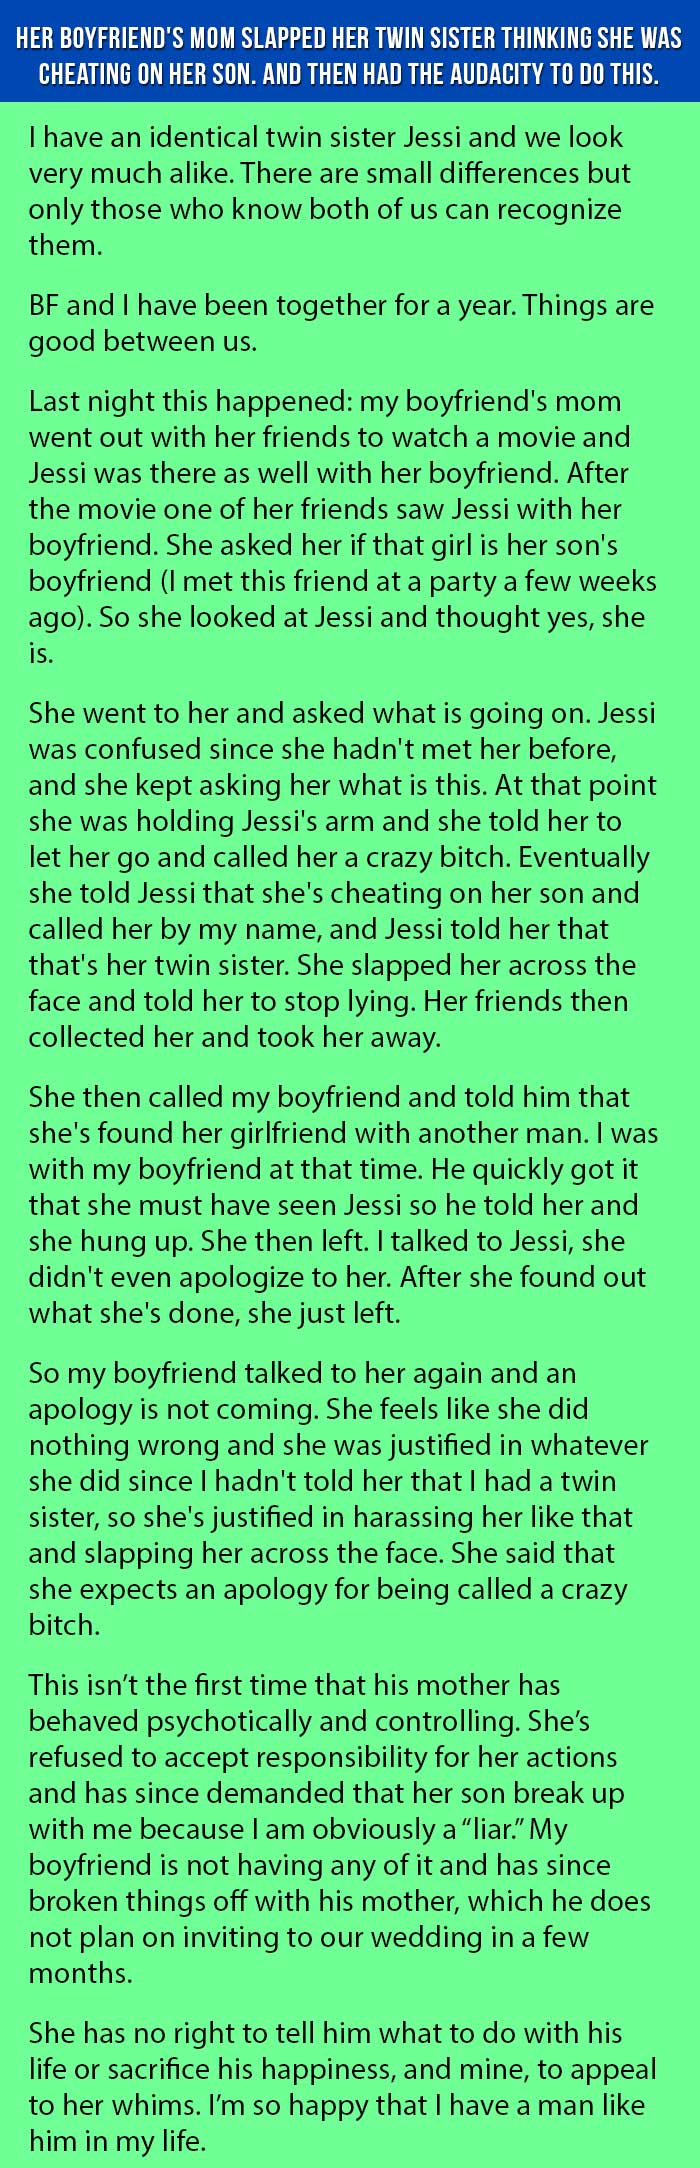 Her Boyfriend's Mom Slapped Her Twin Sister Thinking She Was Cheating On  Her Son And Then